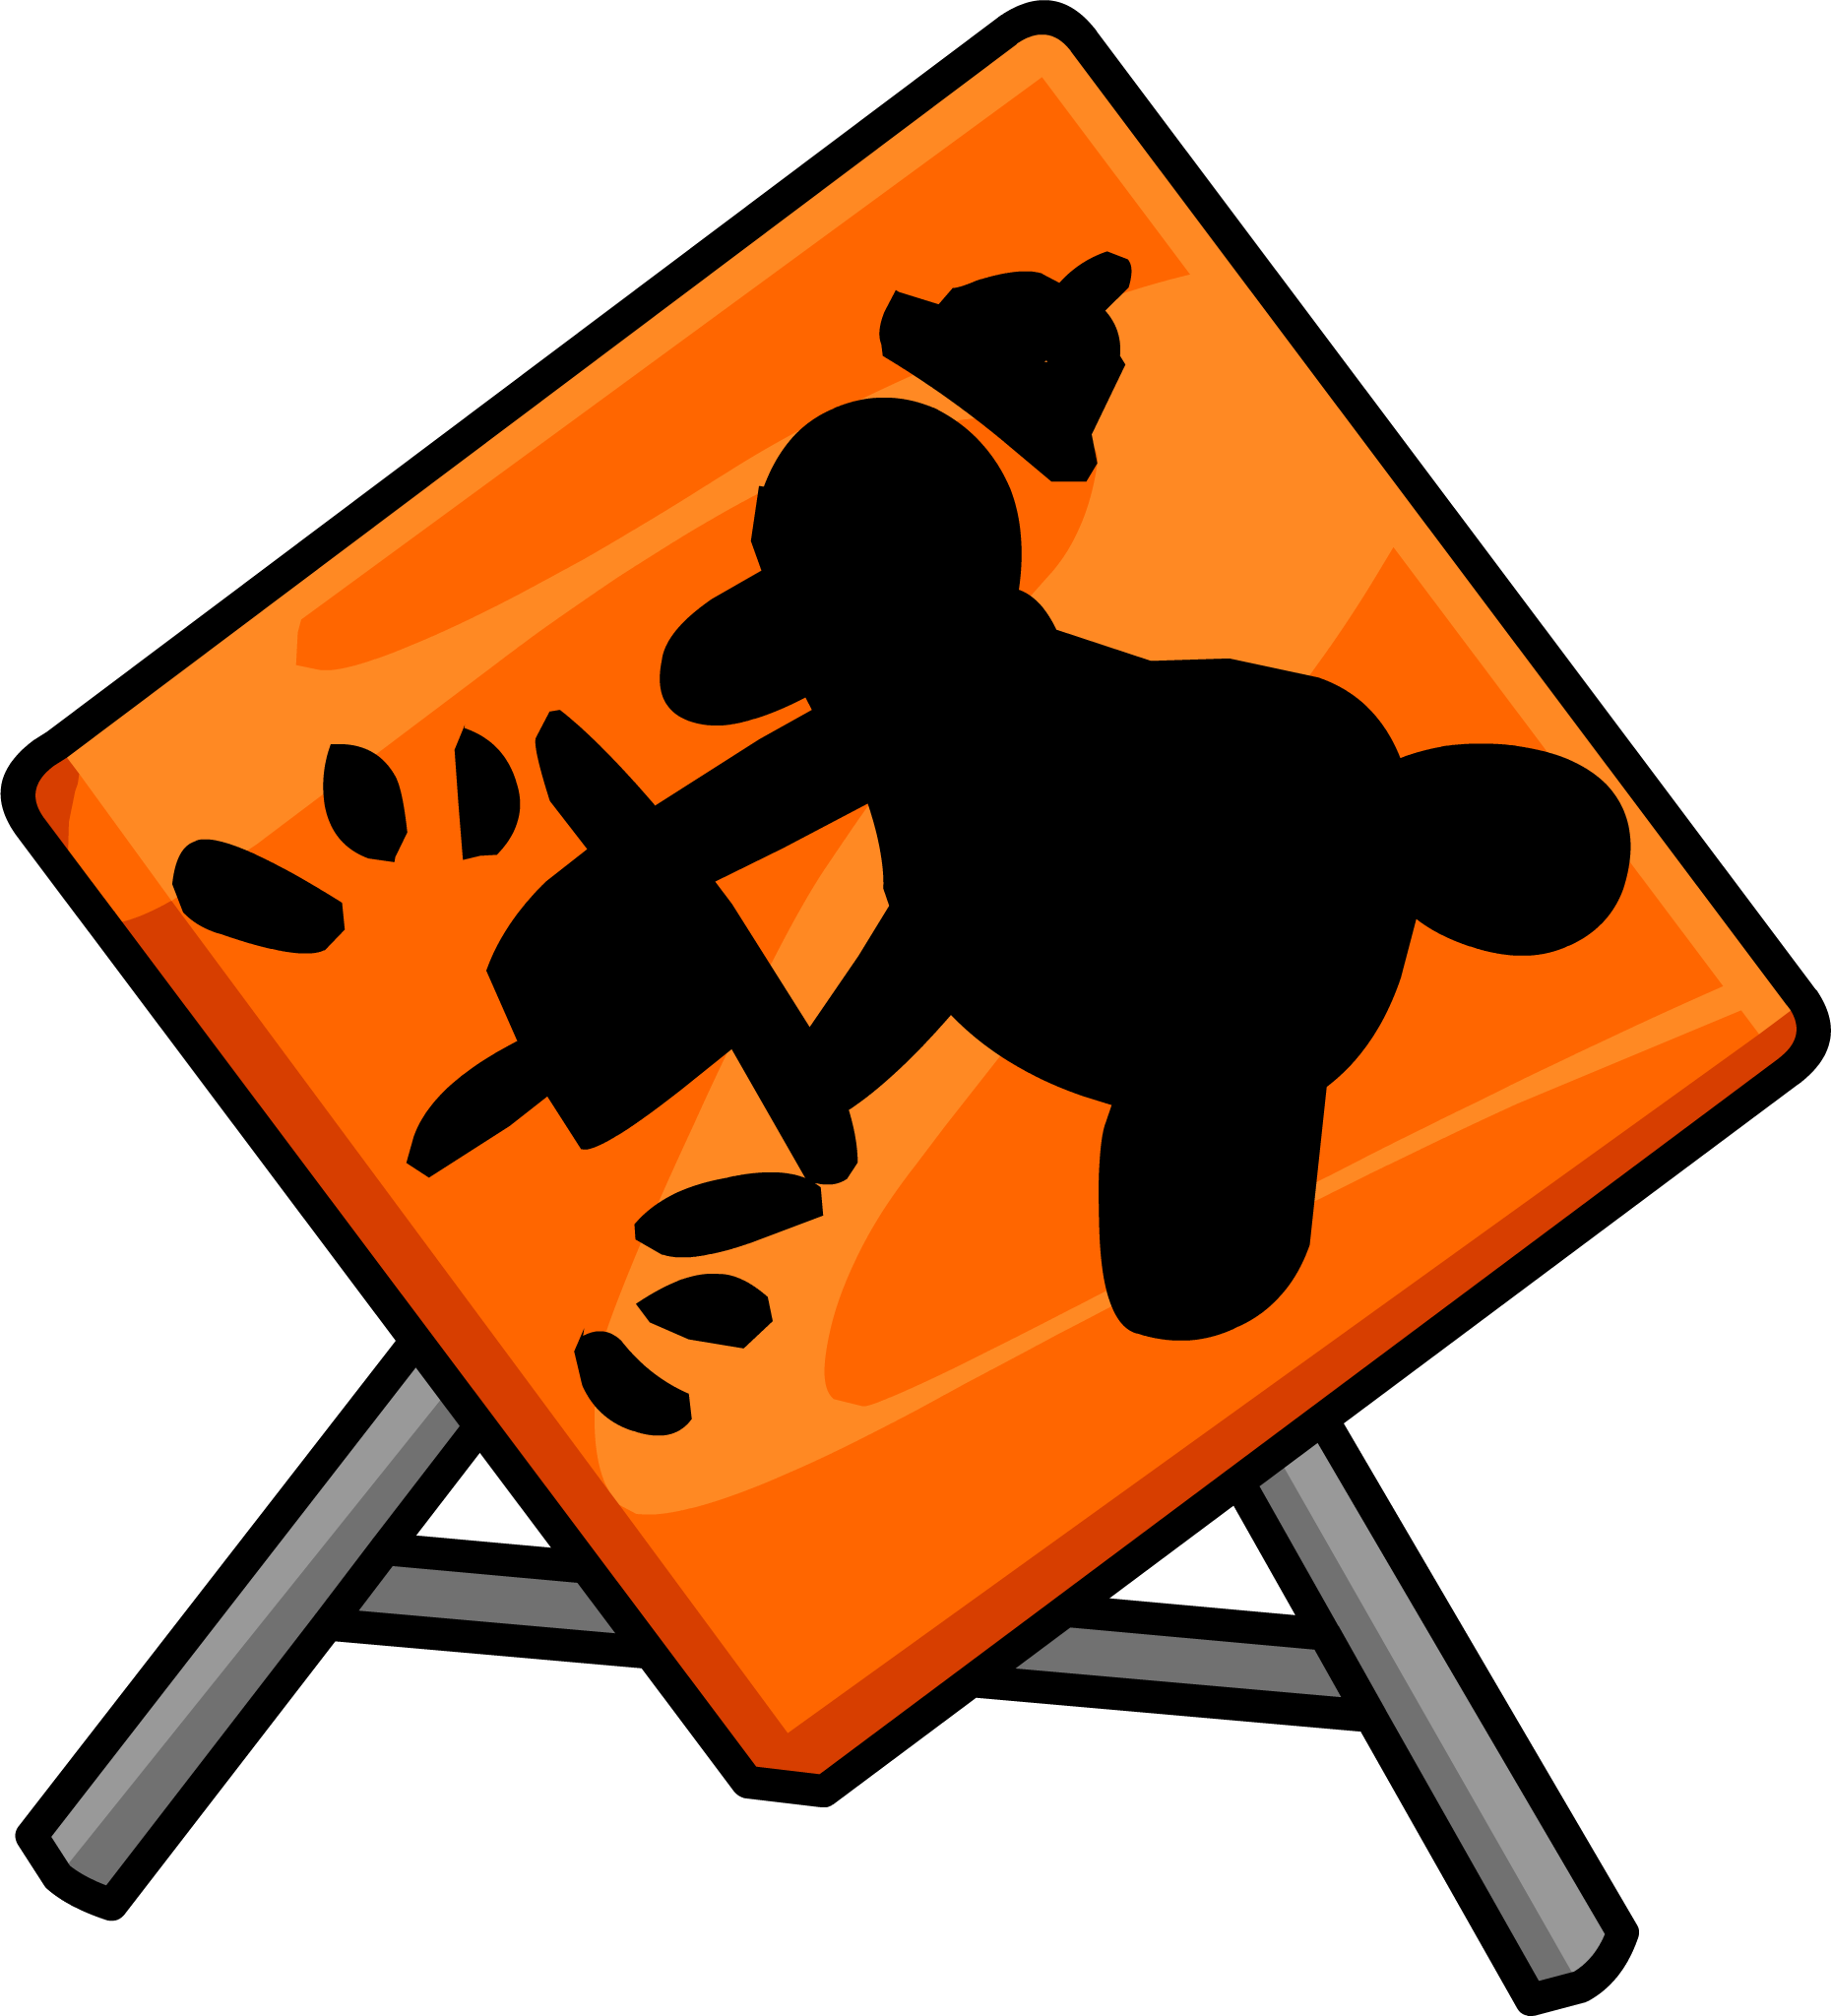 Construction sign png. Image club penguin wiki